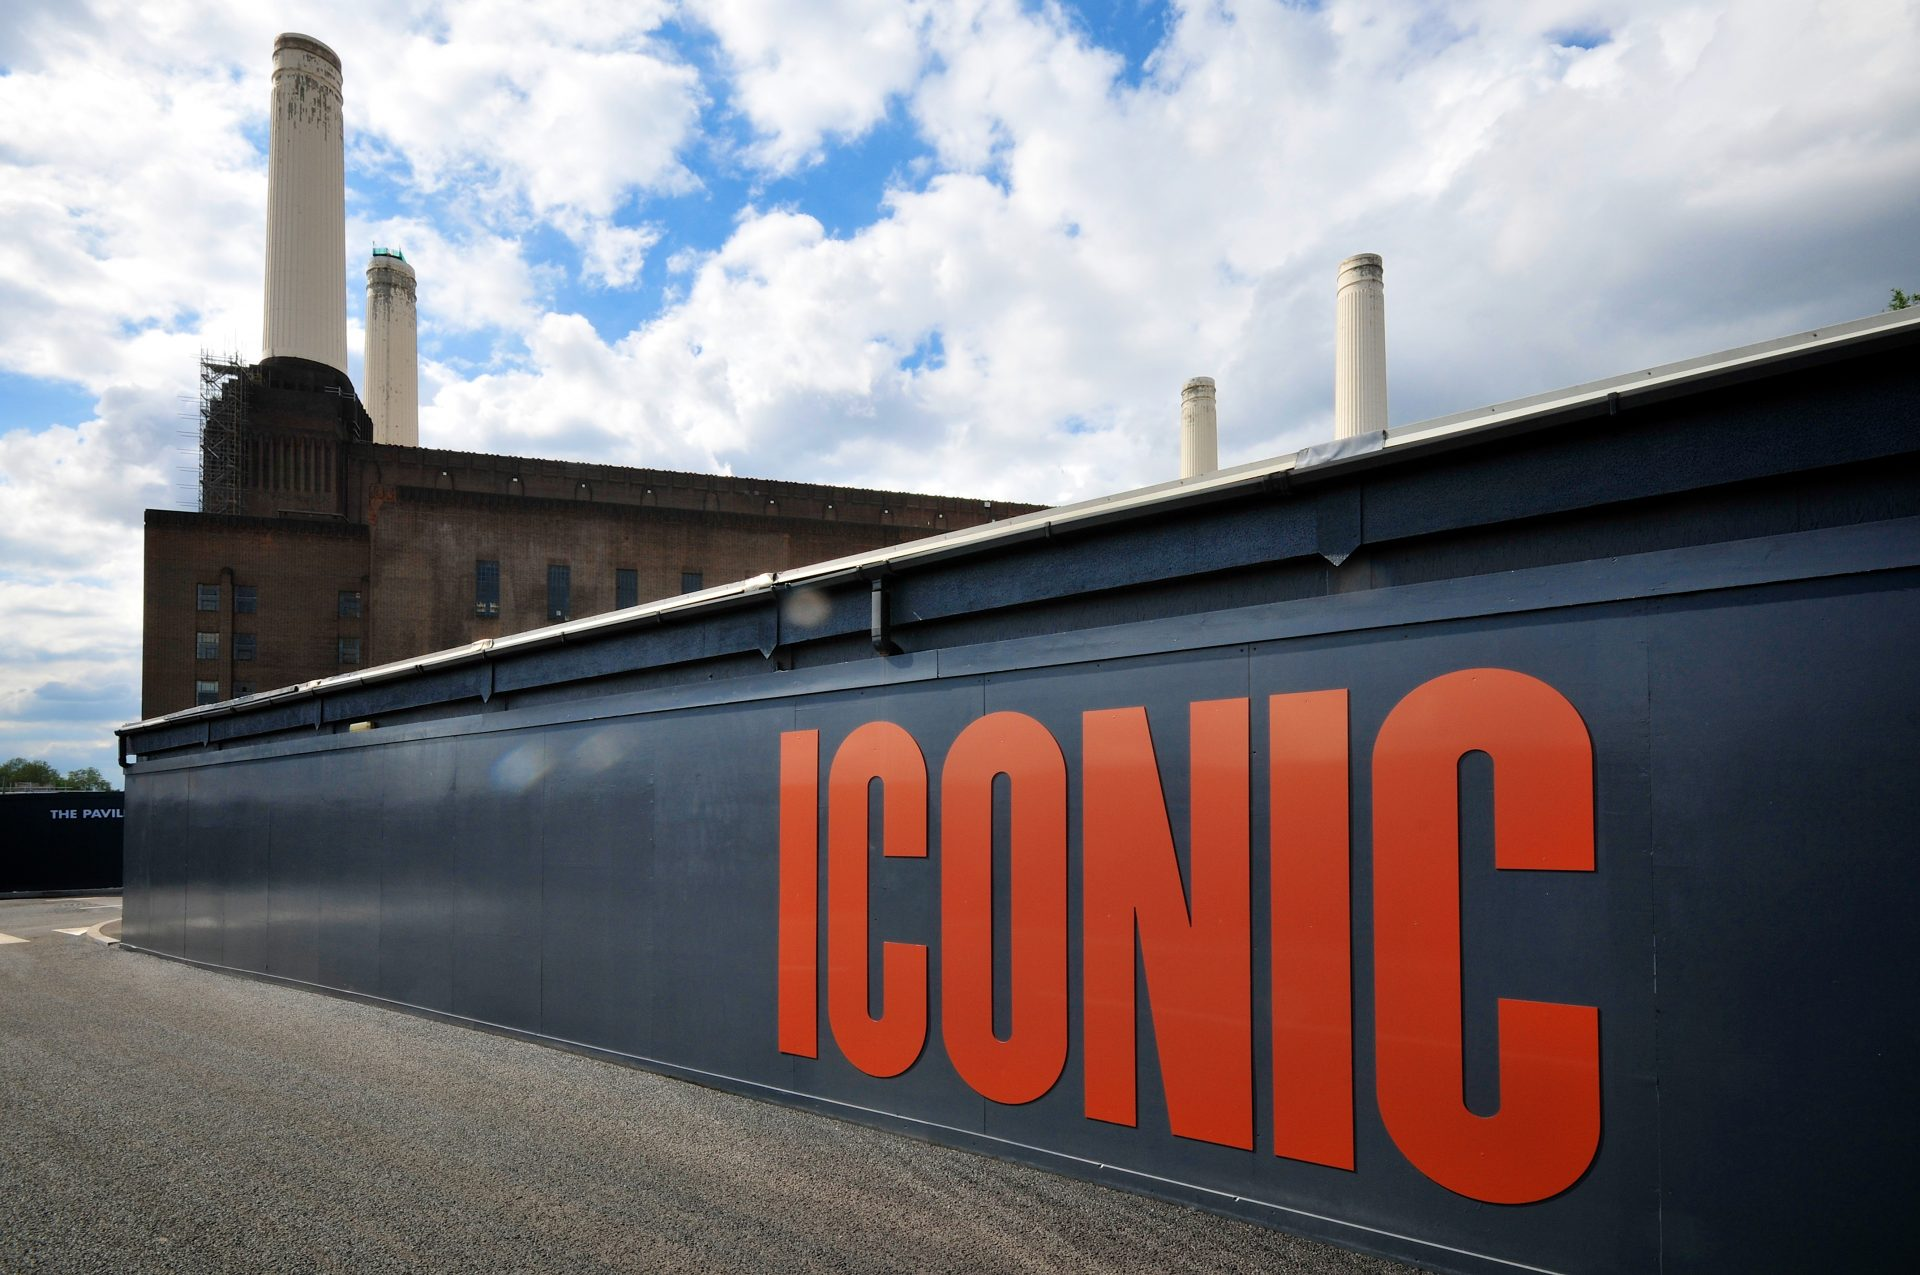 Battersea Power Station – perimeter signage & hoarding by Octink